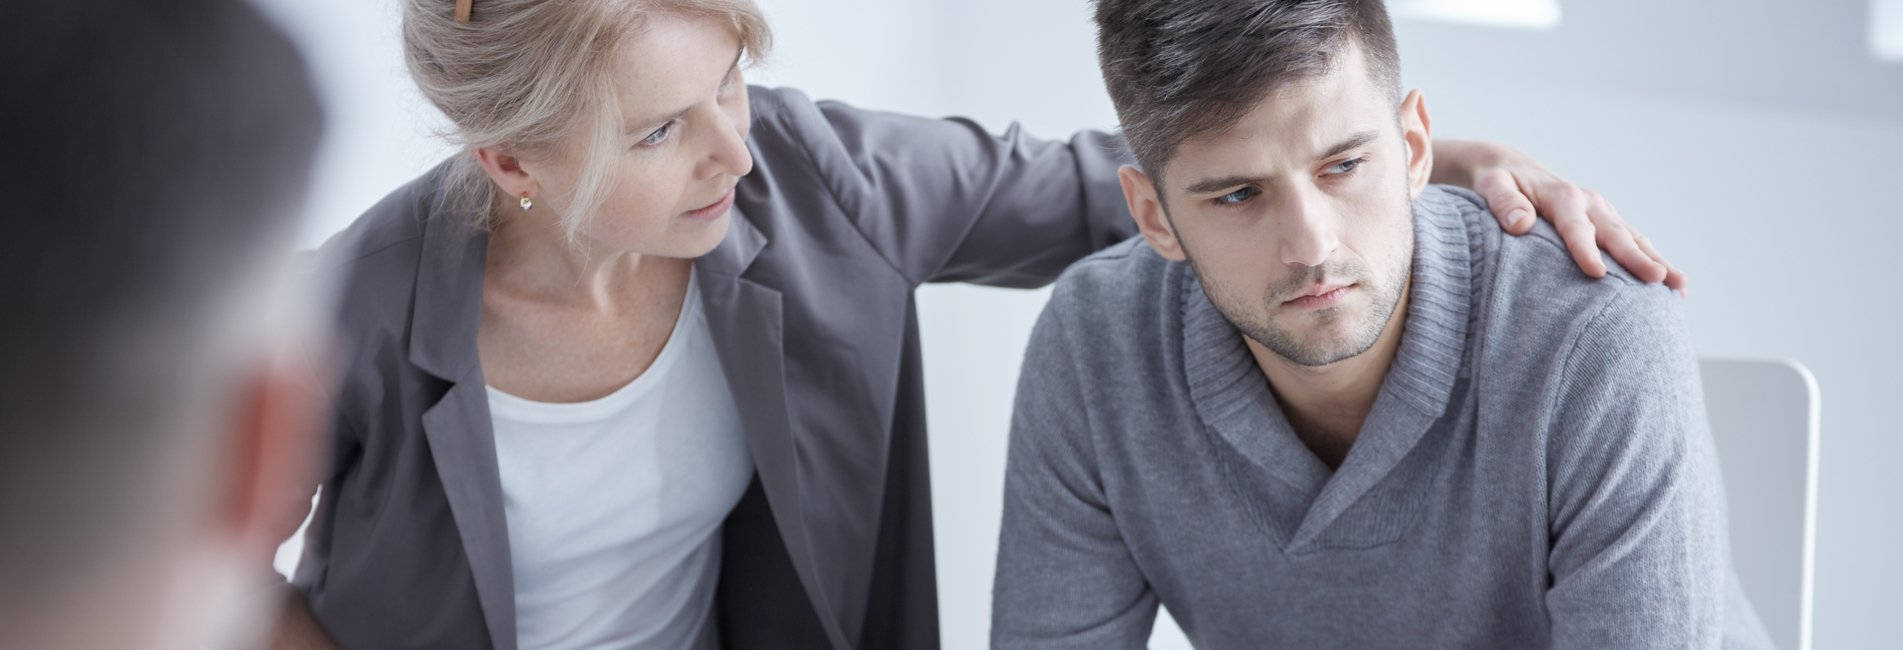 Online Addiction Treatment - Resurgence - A young man is comforted by his mother and addiction therapist during a family therapy session for his online addiction treatment.